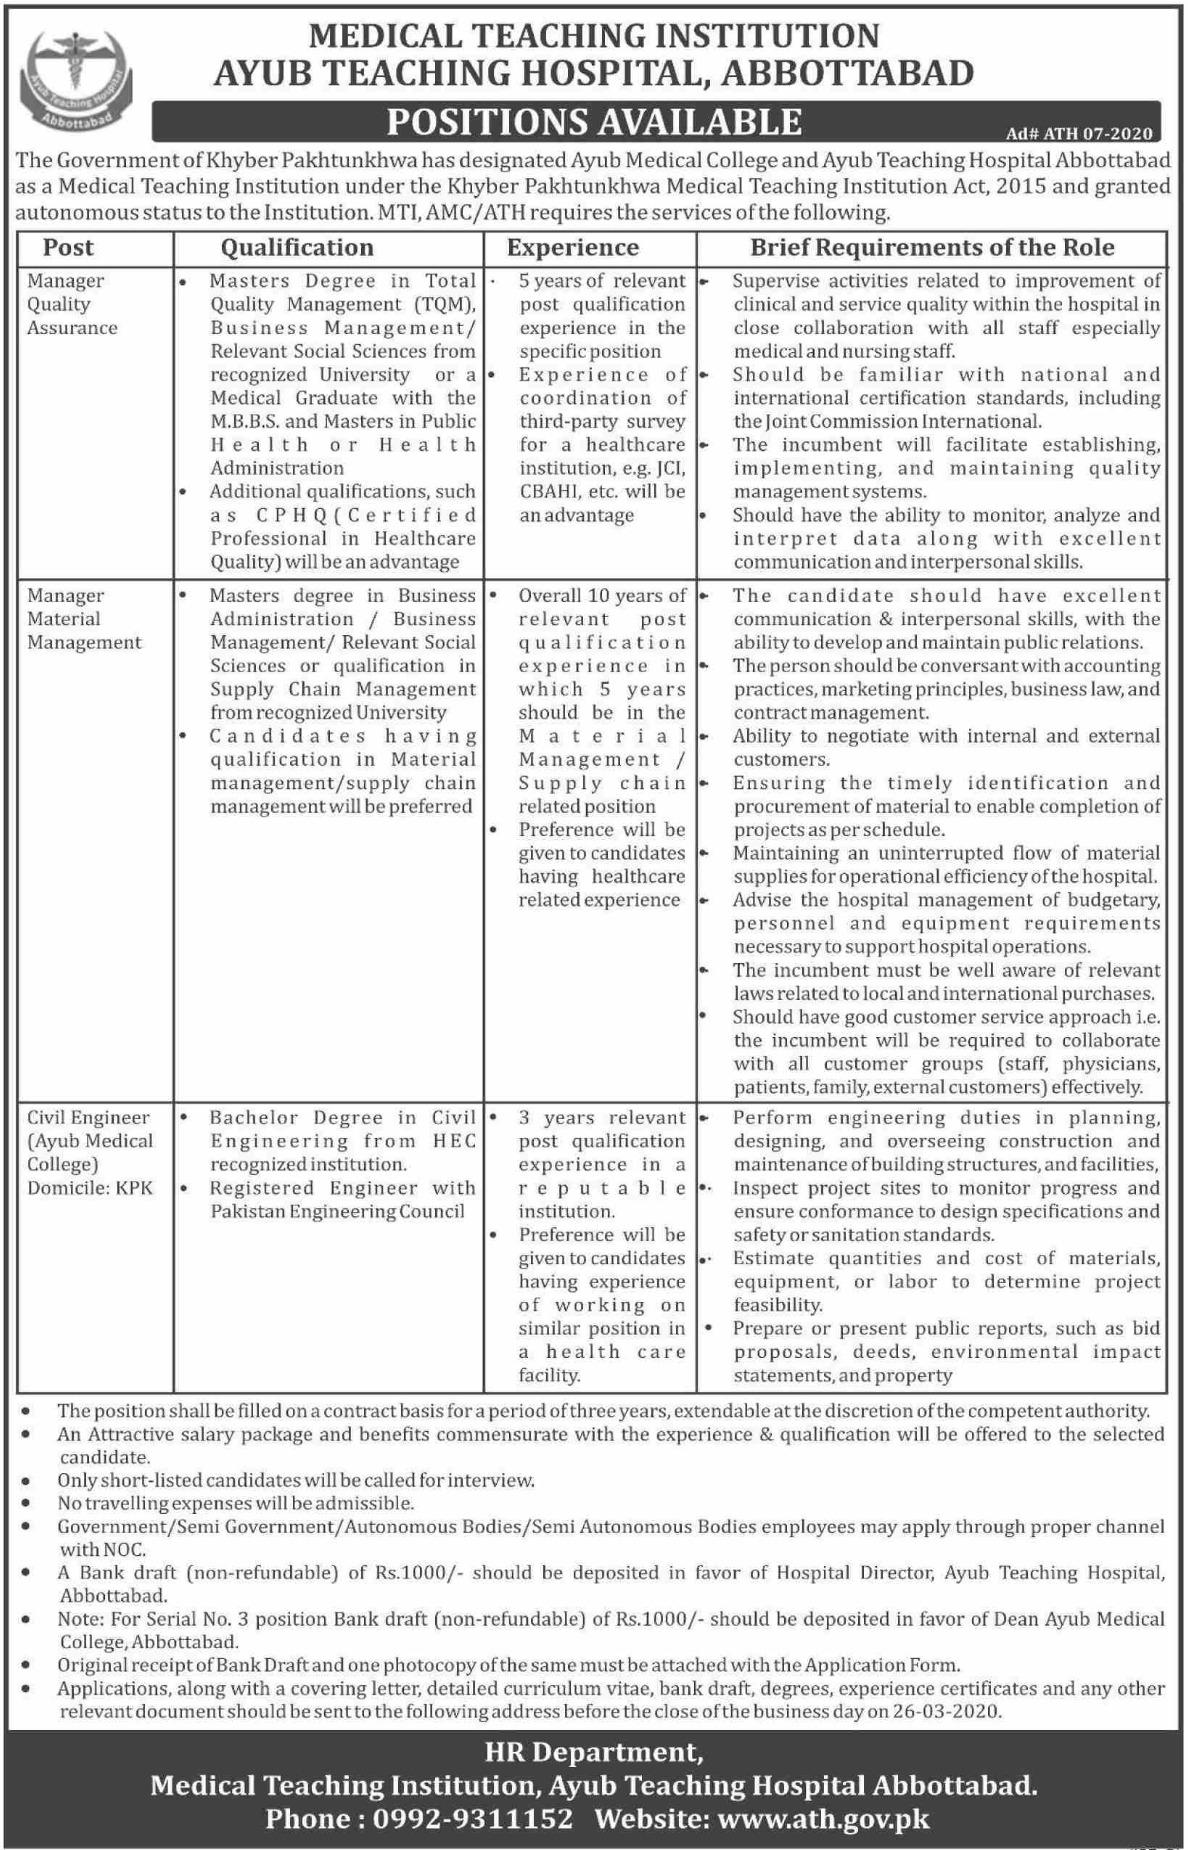 Ayub Teaching Hospital Abbottabad Jobs 2020